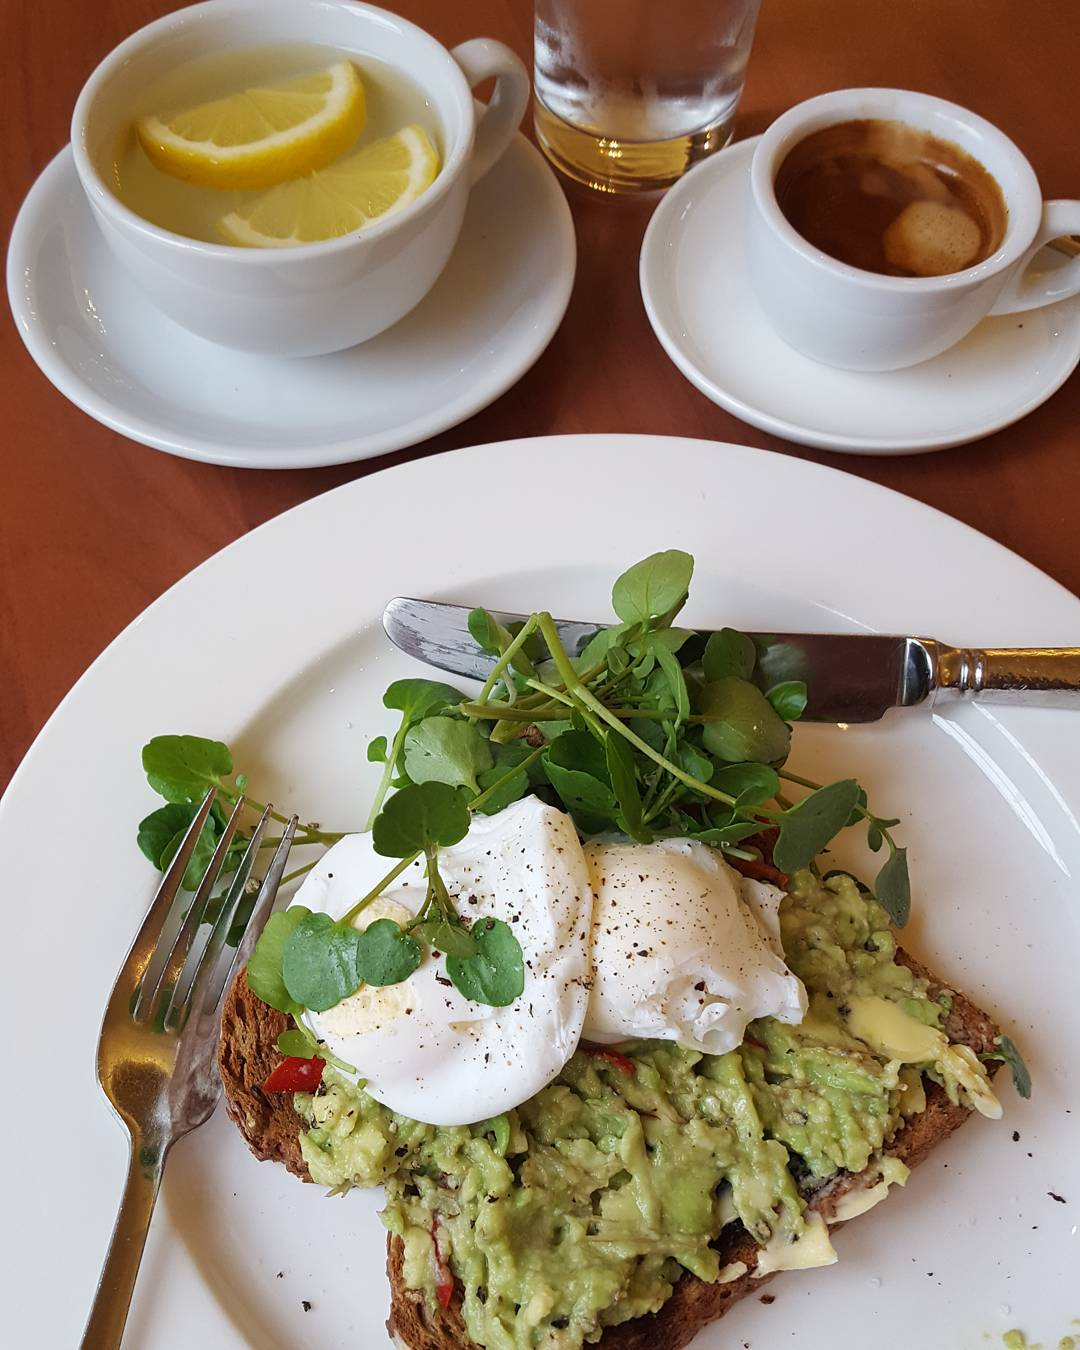 Finally over flu and back to a barrecore class  Always have a protein breakfast straight after a workout. Poached eggs on toast with smashed avocado witj chilli and an espresso today.  Usually my lowcarb and protein breakfasts are wheatfree but today I really fancied a slice of granary toast A little of what you fancy is slways a good thing. Then you dont feel deprived or hanker after the forbidden any more.